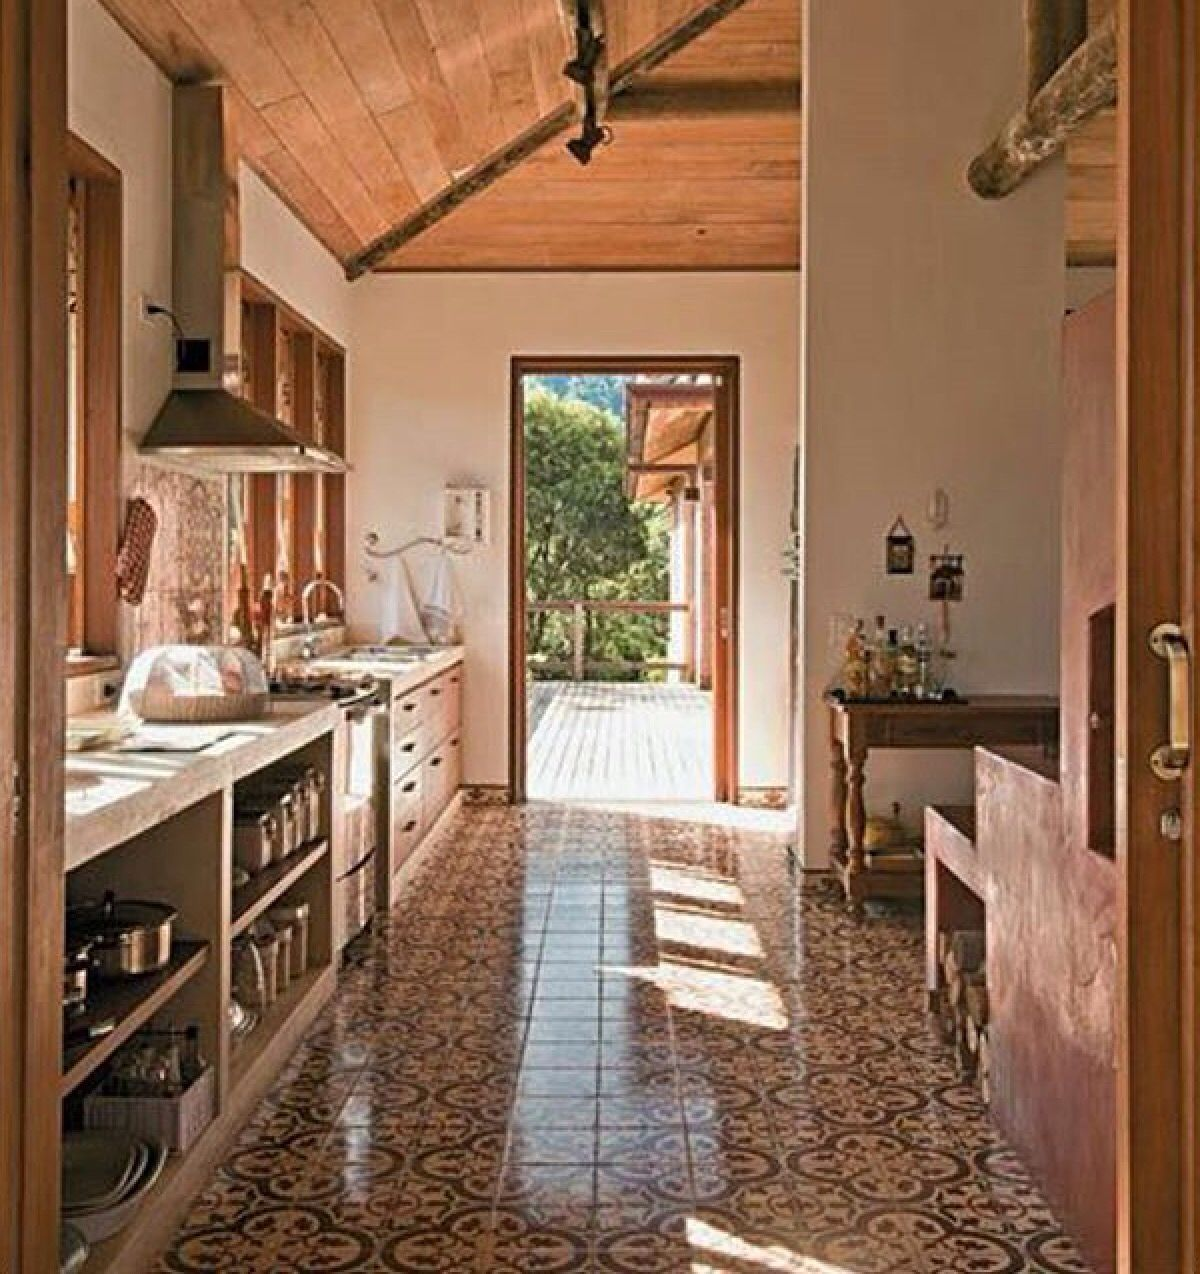 Cocina decoracion deco pinterest kitchens for Decoracion de cocinas